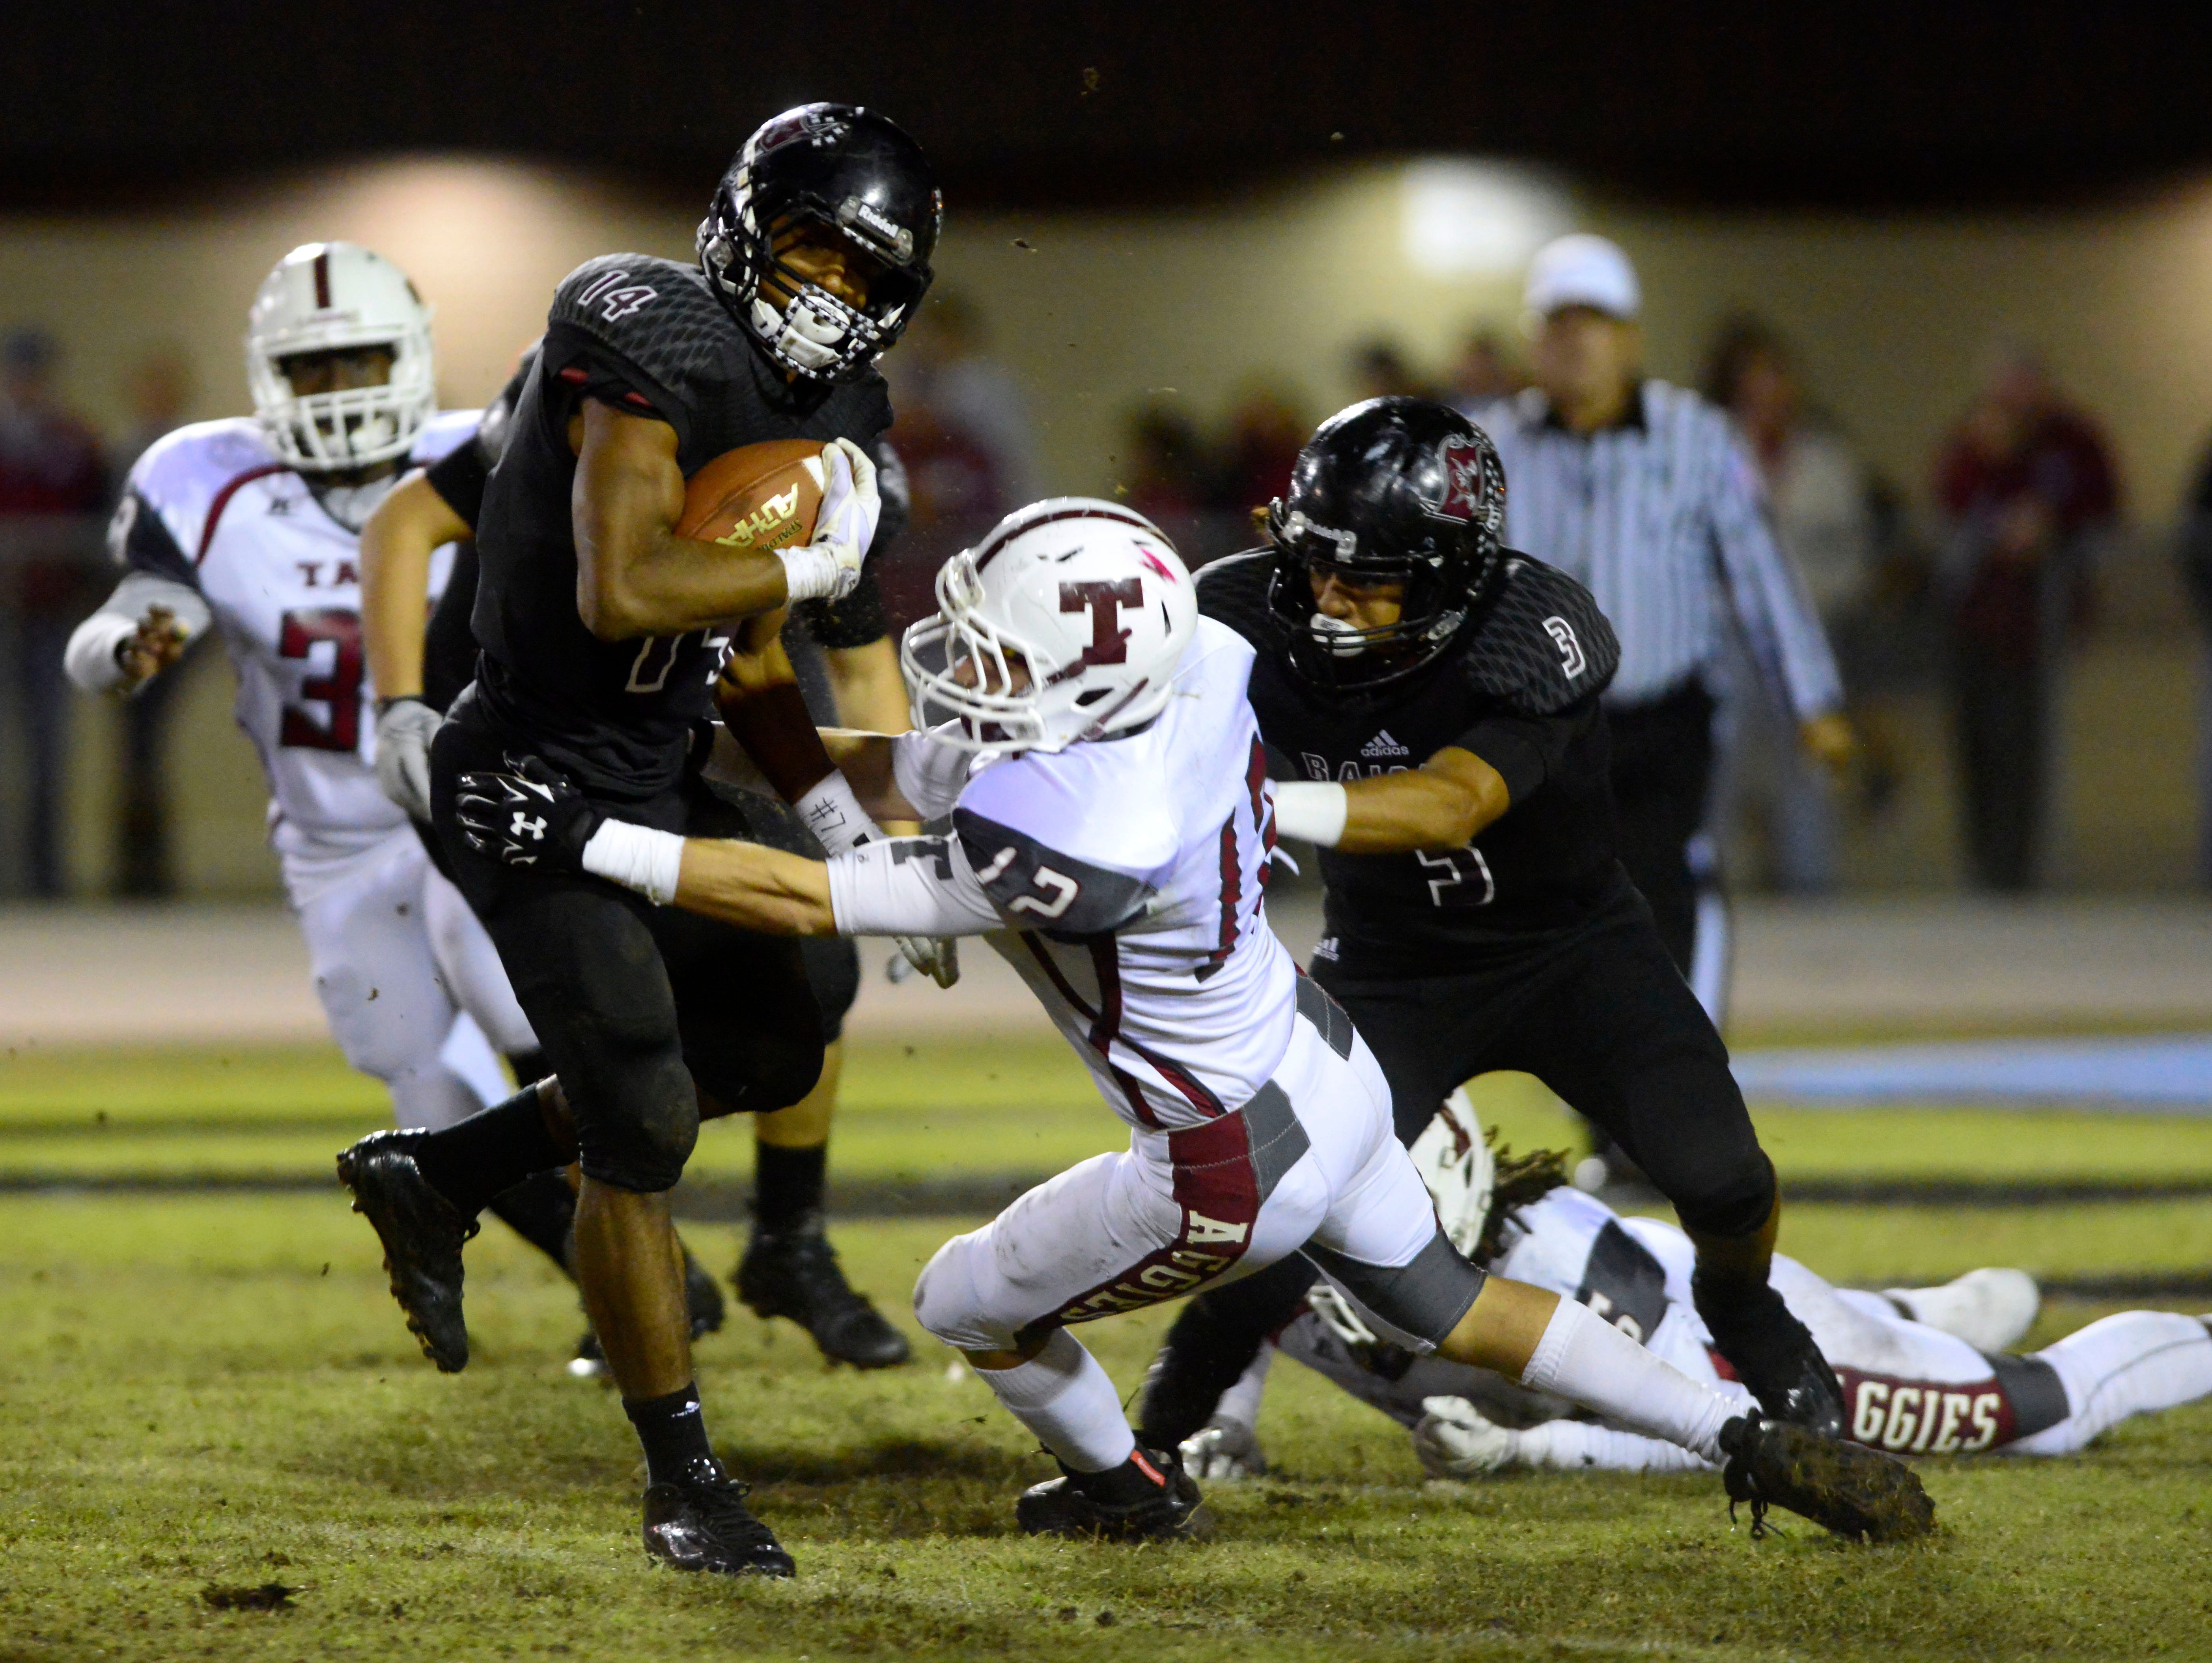 During the 2015 football season, undefeated Navarre took on the Tate Aggies in the first round of the state playoffs. Under this new proposed format, the Raiders and Aggies most likely wouldn't have met until the region finals.